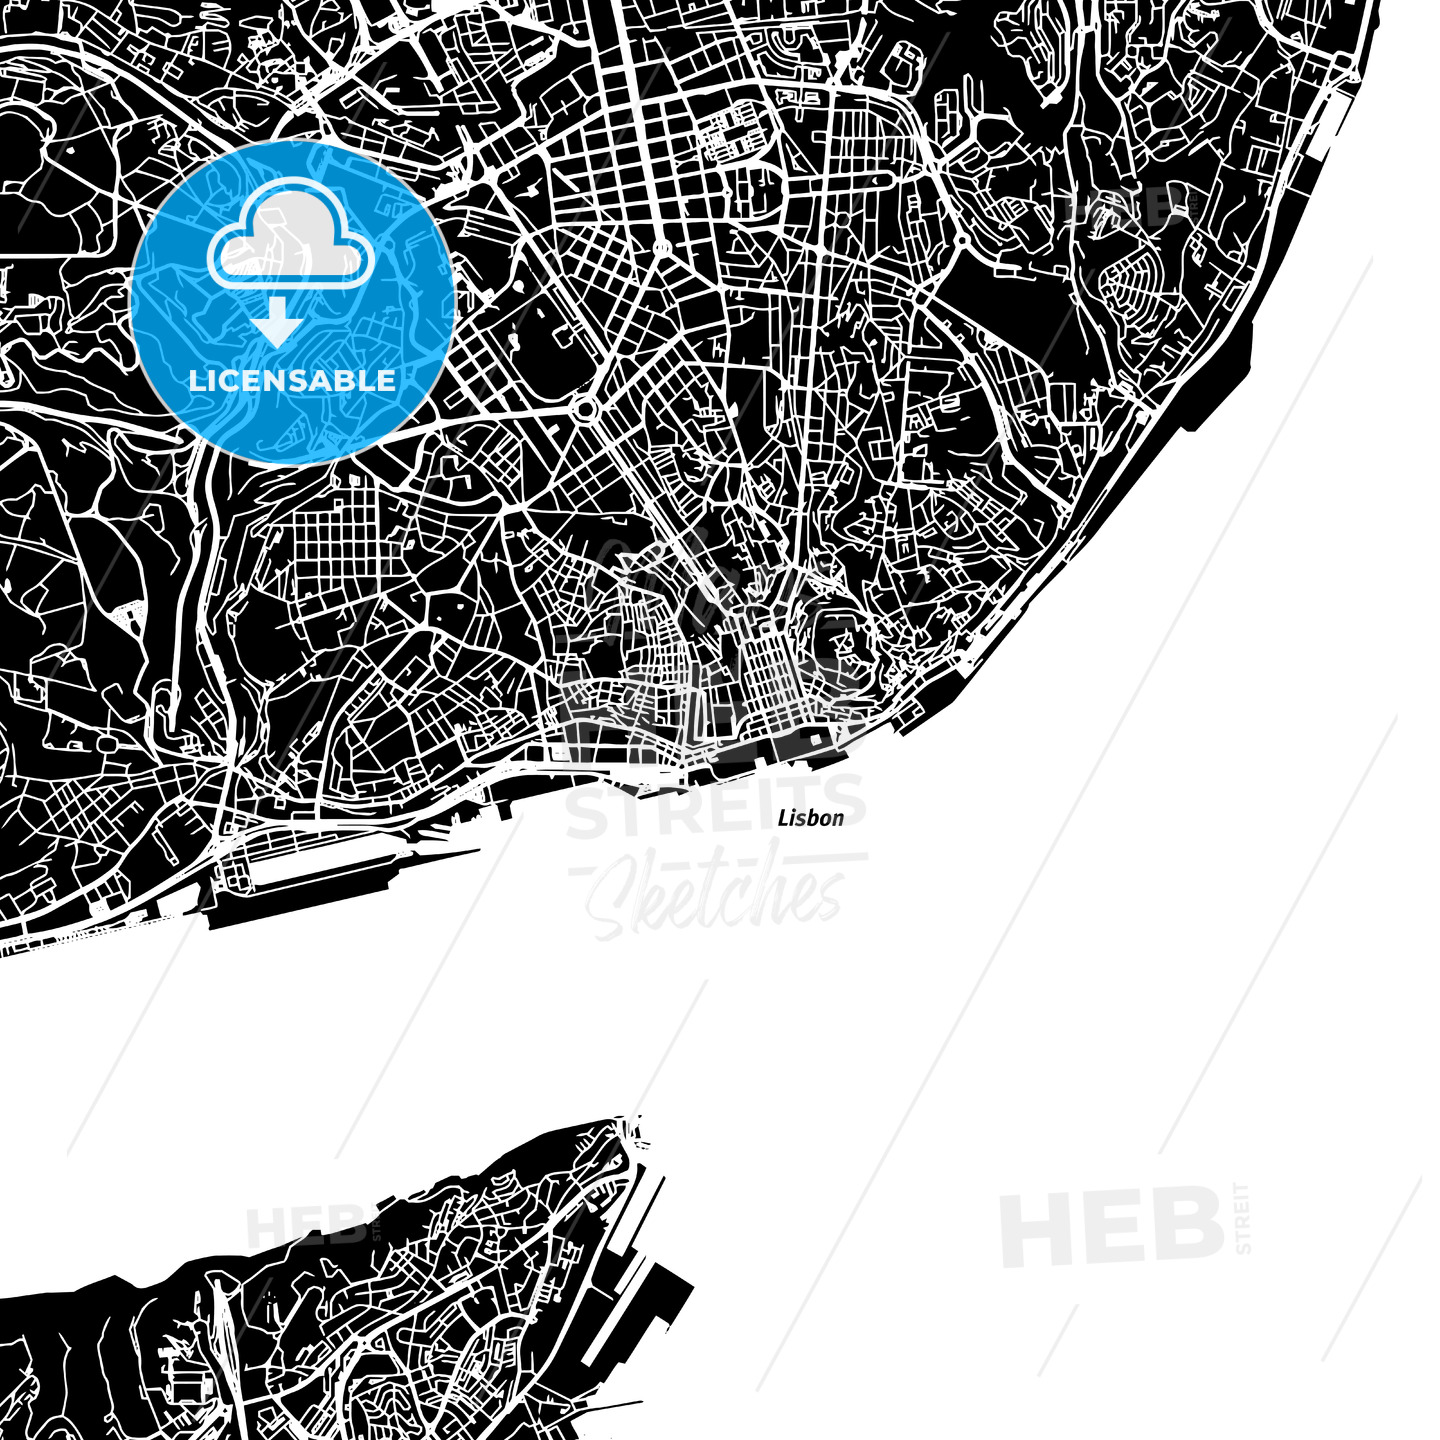 Lisbon Vector Map - HEBSTREITS